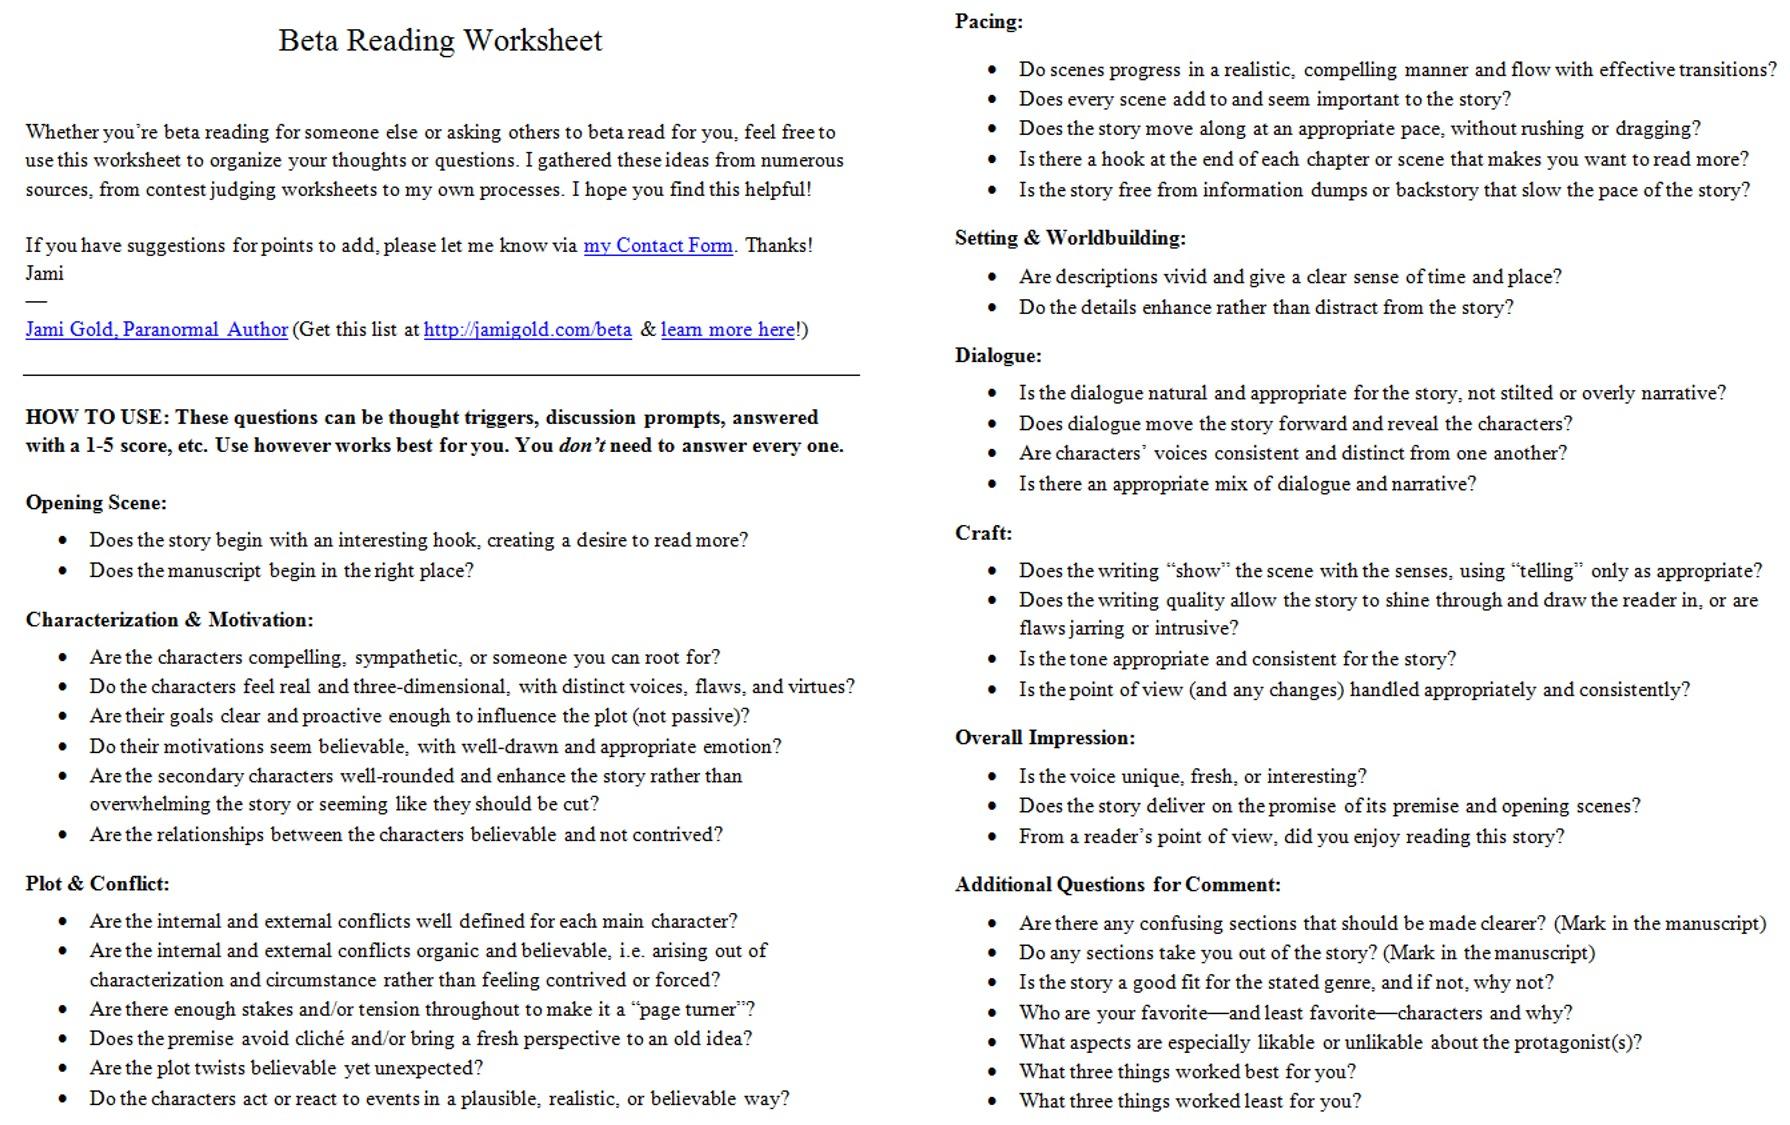 Aldiablosus  Stunning Worksheets For Writers  Jami Gold Paranormal Author With Engaging Screen Shot Of The Twopage Beta Reading Worksheet With Divine Function Machines Worksheets Also Darwin Worksheet In Addition Theme Worksheets For Th Grade And Literary Devices Worksheets As Well As Multiplication Strategies Worksheet Additionally Add Worksheets From Jamigoldcom With Aldiablosus  Engaging Worksheets For Writers  Jami Gold Paranormal Author With Divine Screen Shot Of The Twopage Beta Reading Worksheet And Stunning Function Machines Worksheets Also Darwin Worksheet In Addition Theme Worksheets For Th Grade From Jamigoldcom